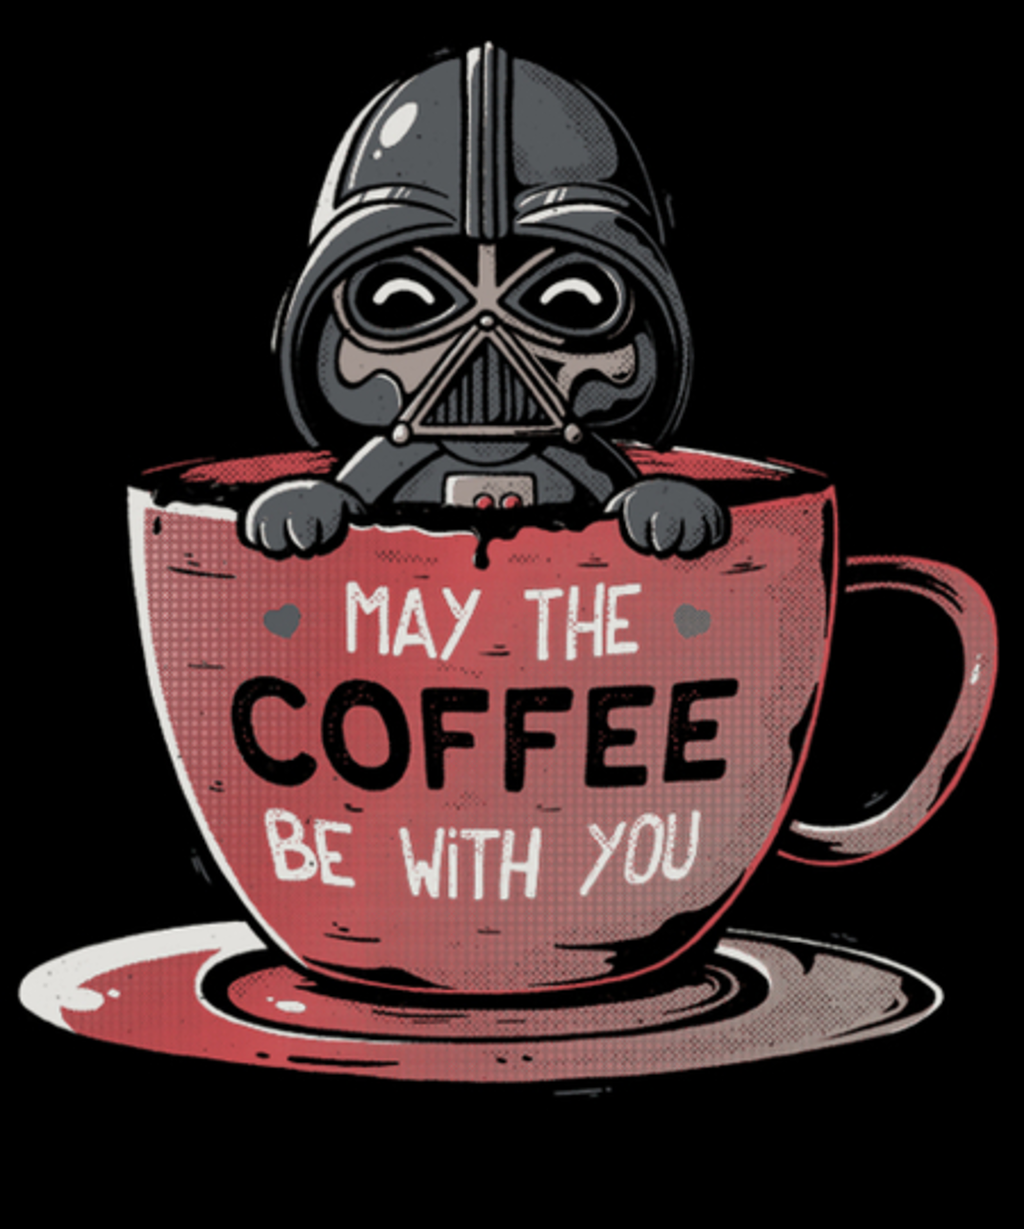 Qwertee: May the Coffee Be With You